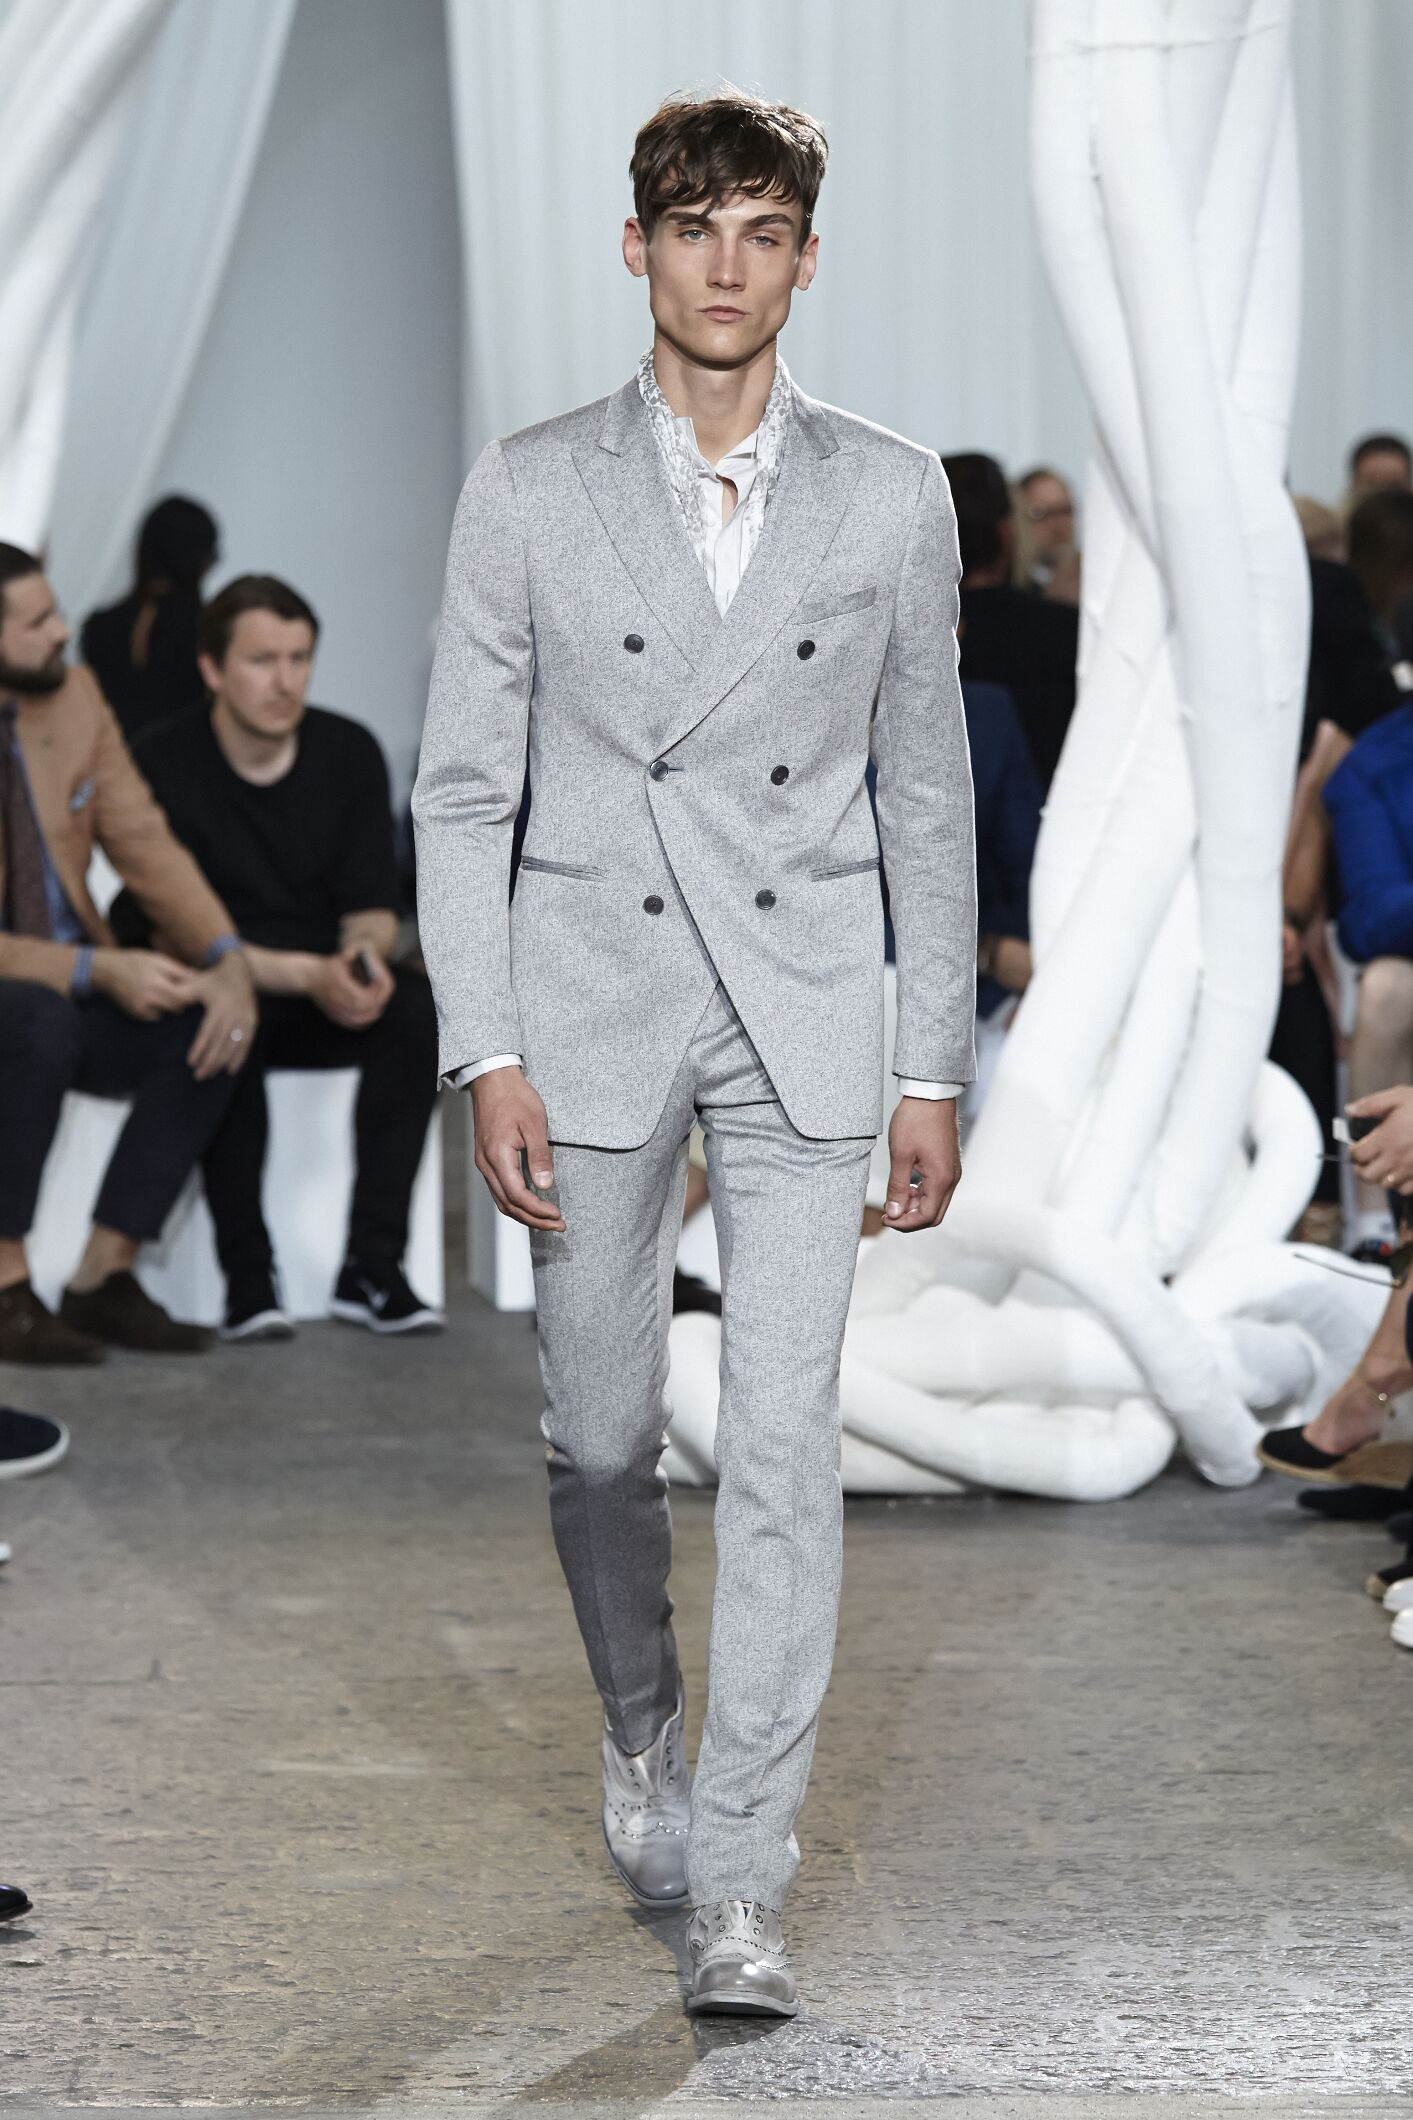 Catwalk John Varvatos Man Fashion Show Summer 2015